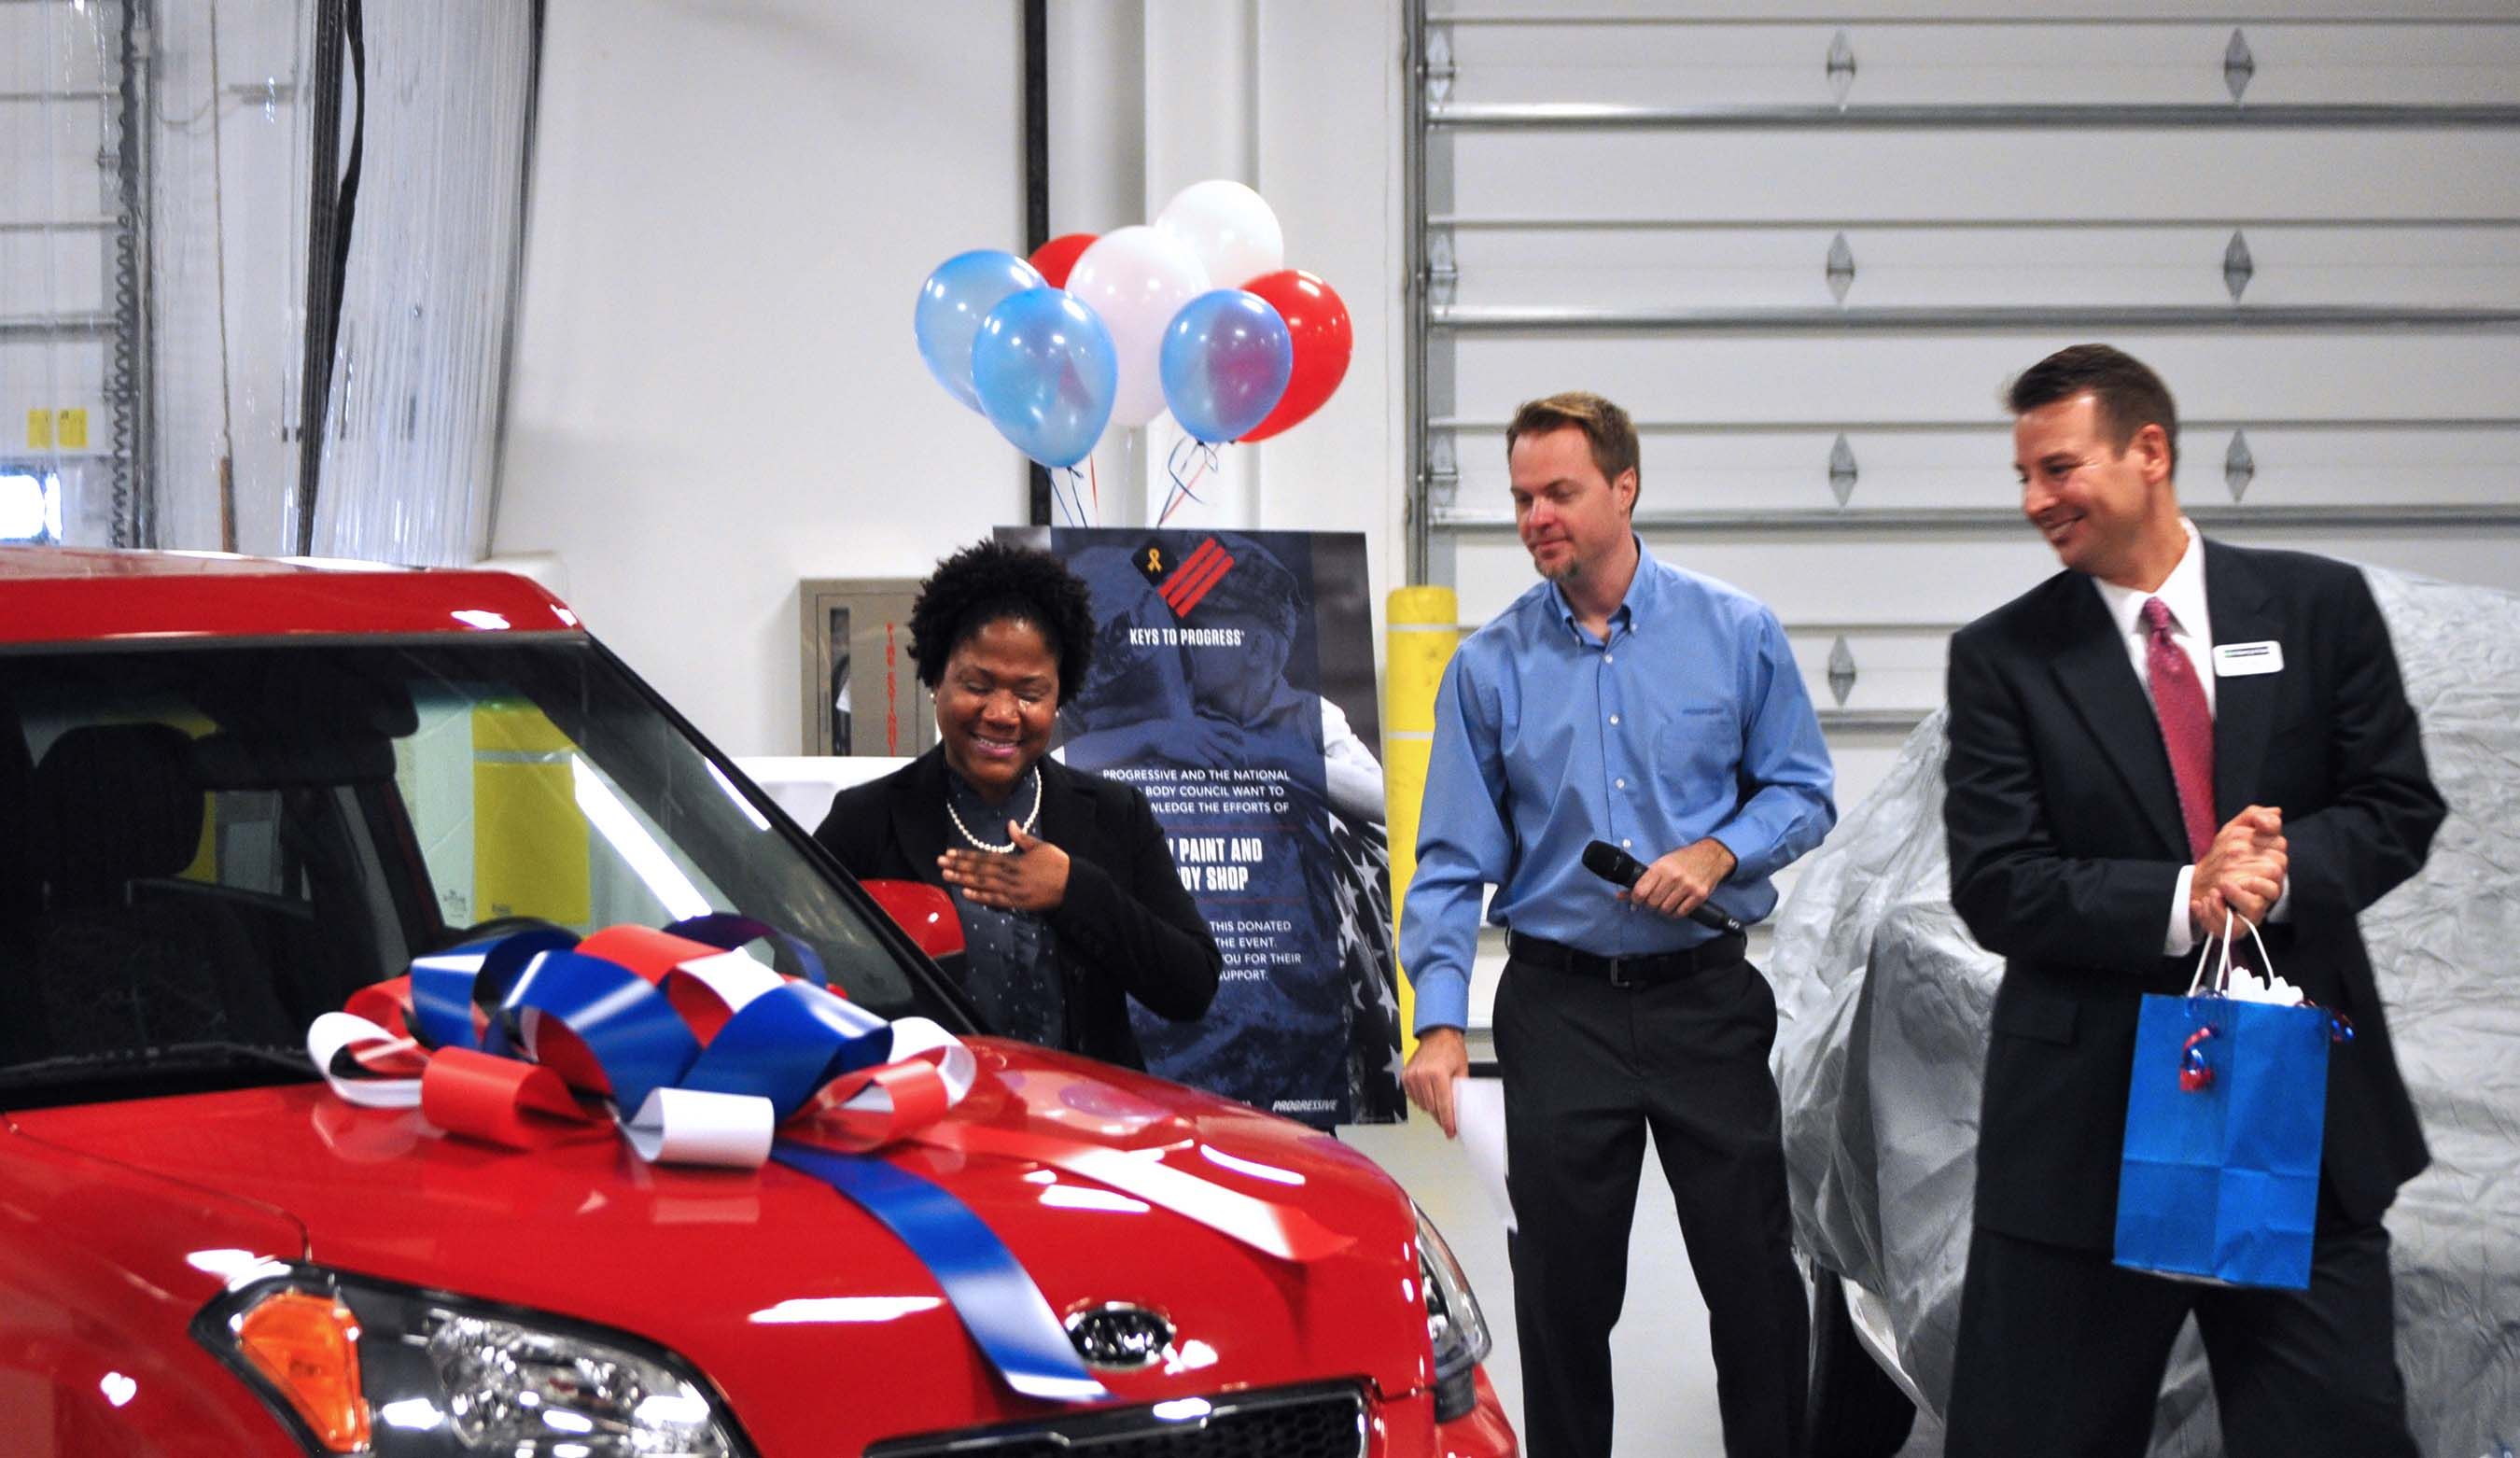 2016 Keys to Progress recipient presented with her vehicle